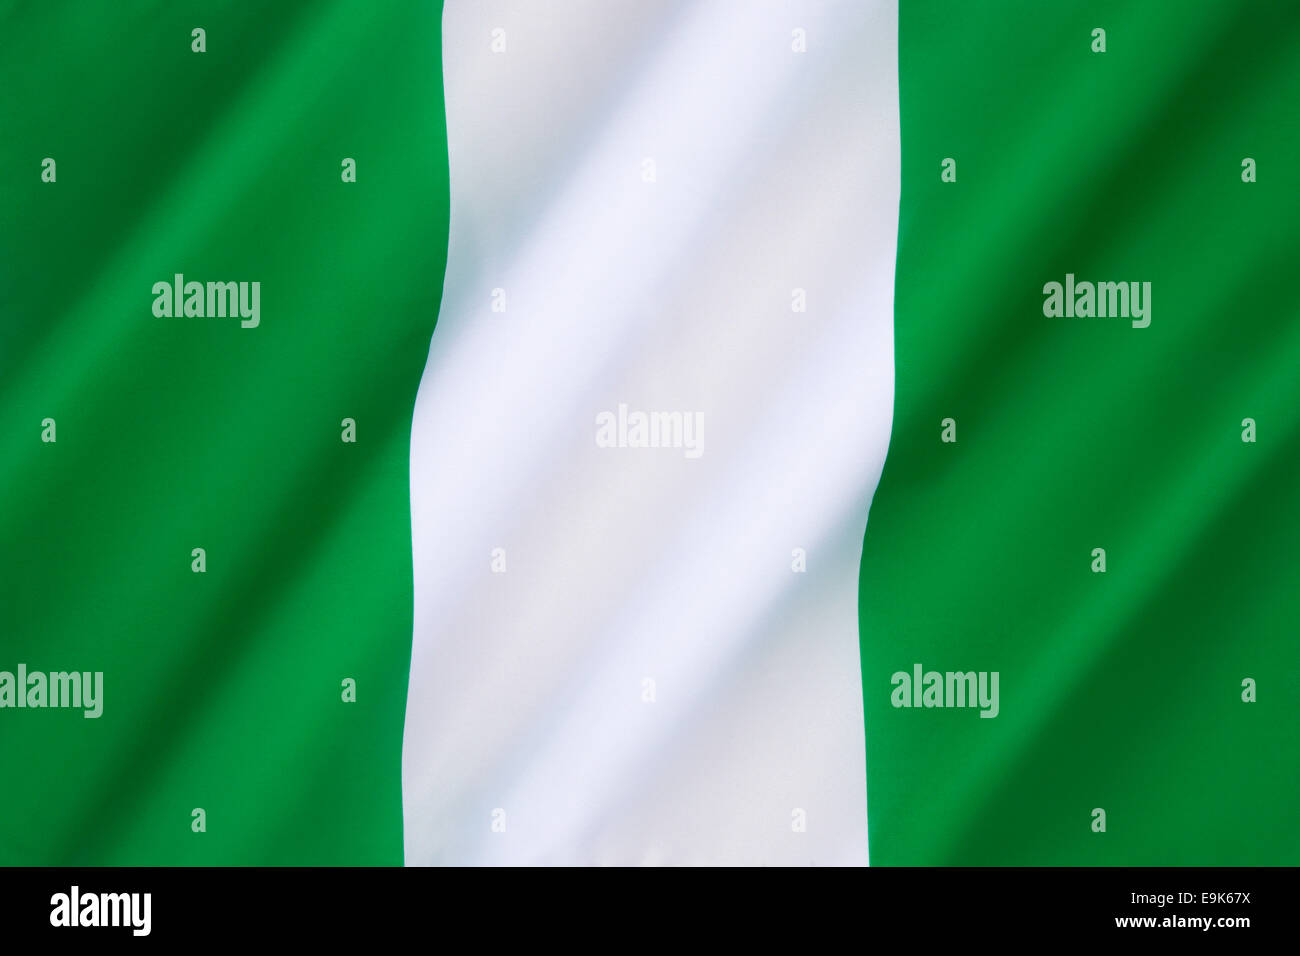 The Flag of Nigeria - designed in 1959 and officially adopted on October 1st 1960. - Stock Image